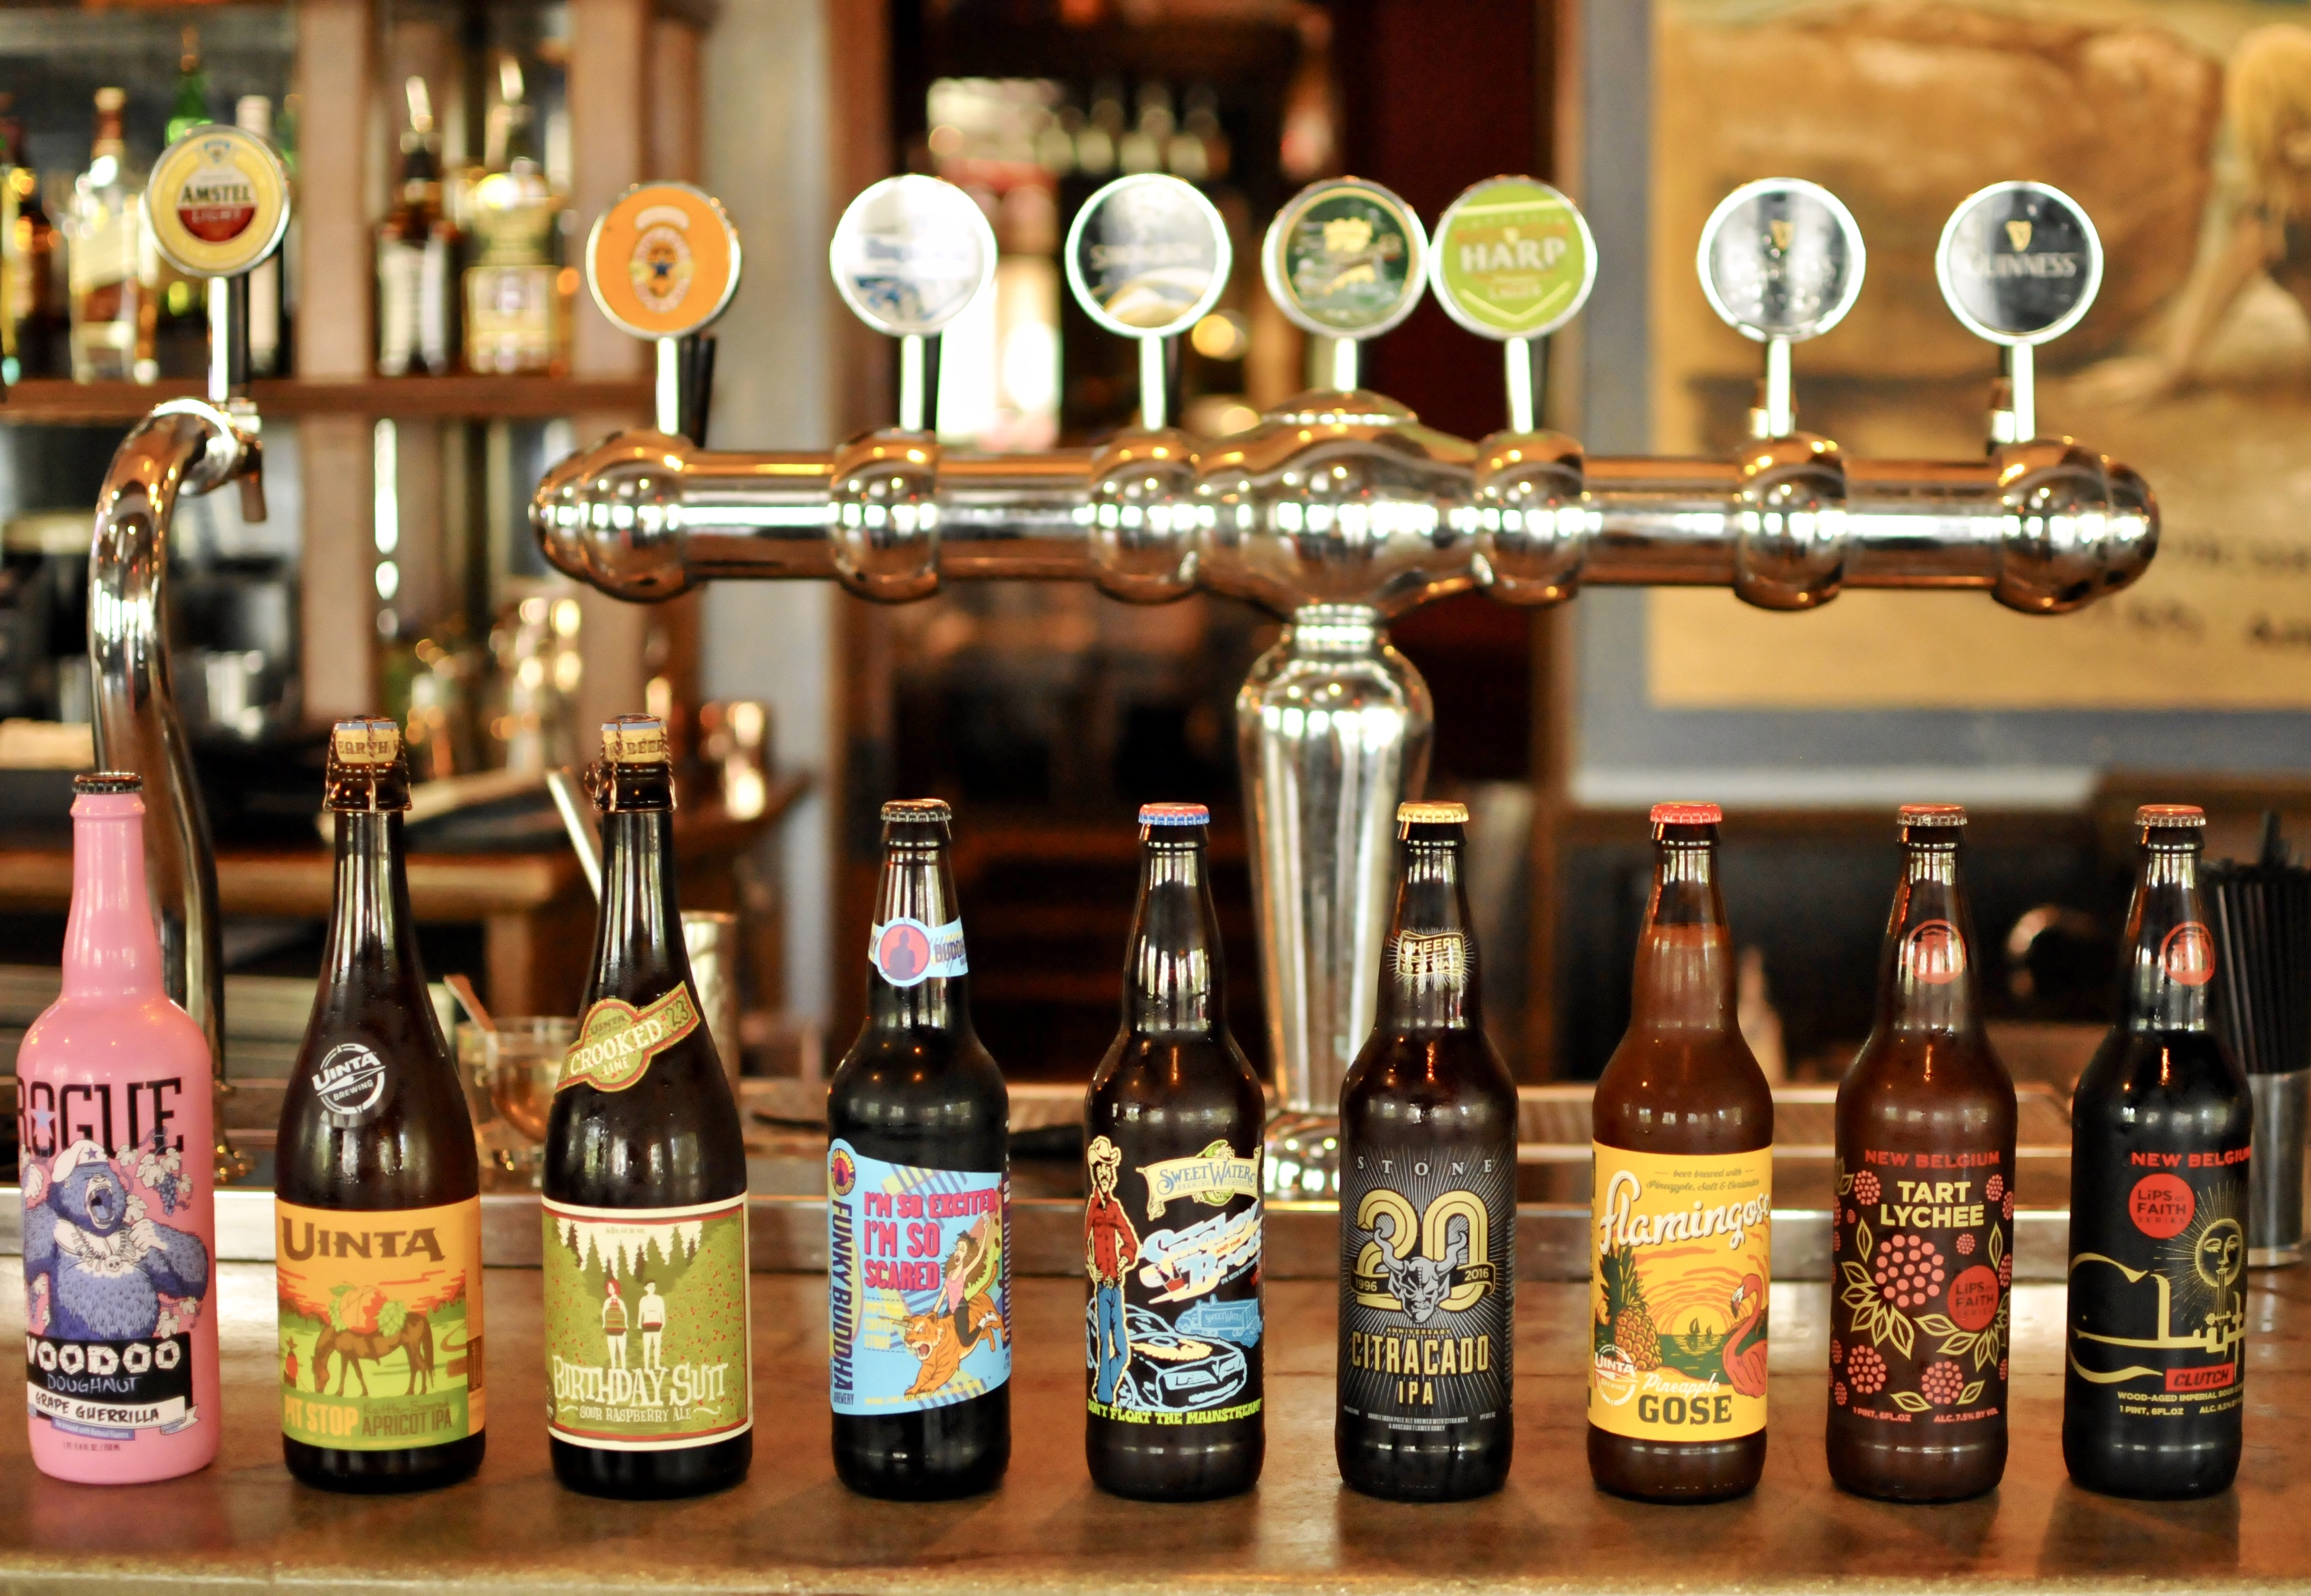 craft beer bottles lined up on a bar